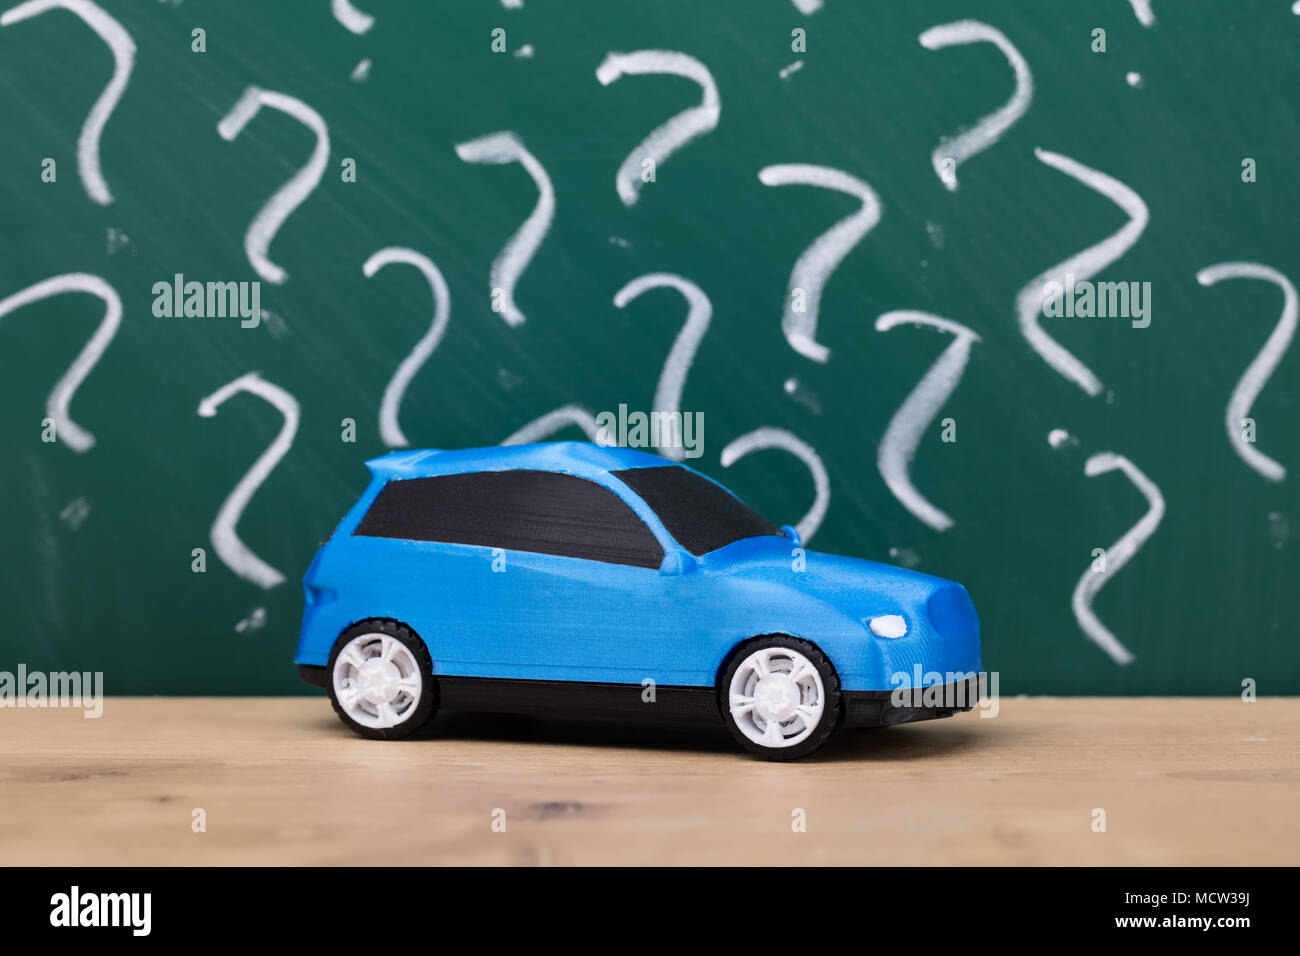 Close-up Of A Blue Car In Front Of Chalkboard Showing Question Mark Signs - Stock Image